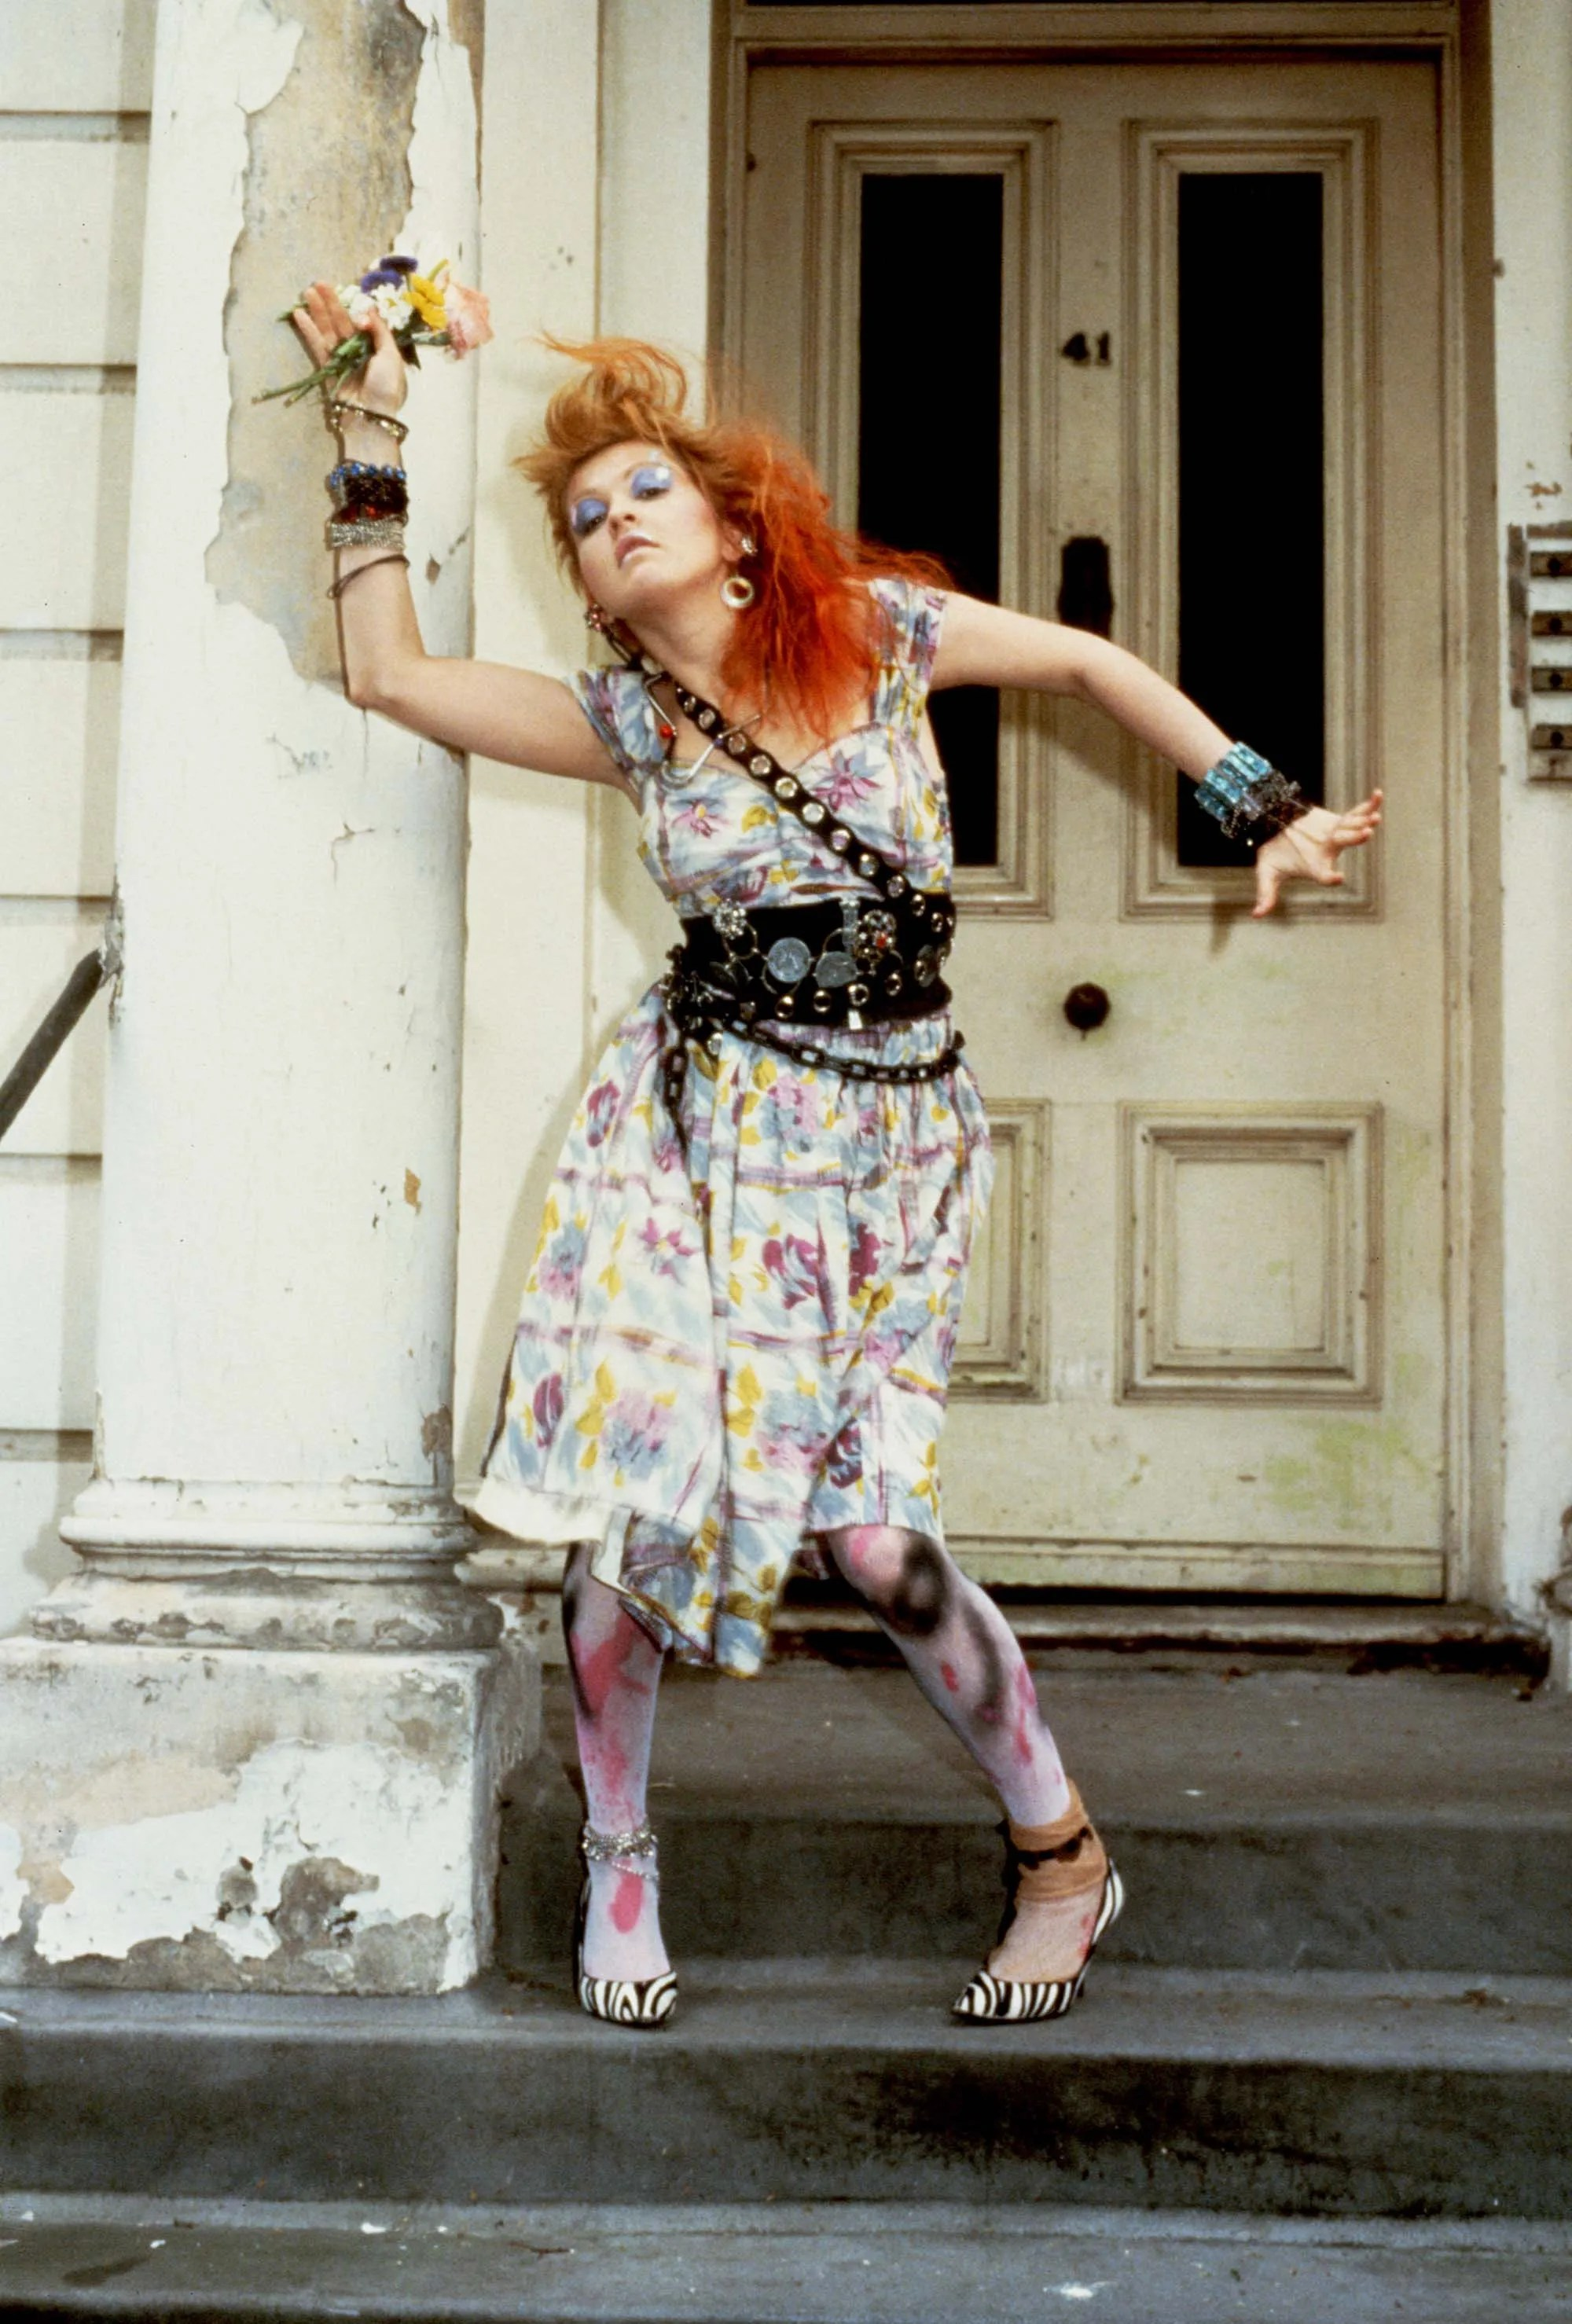 Get Cyndi Laupers Iconic Style Just in Time for Summer